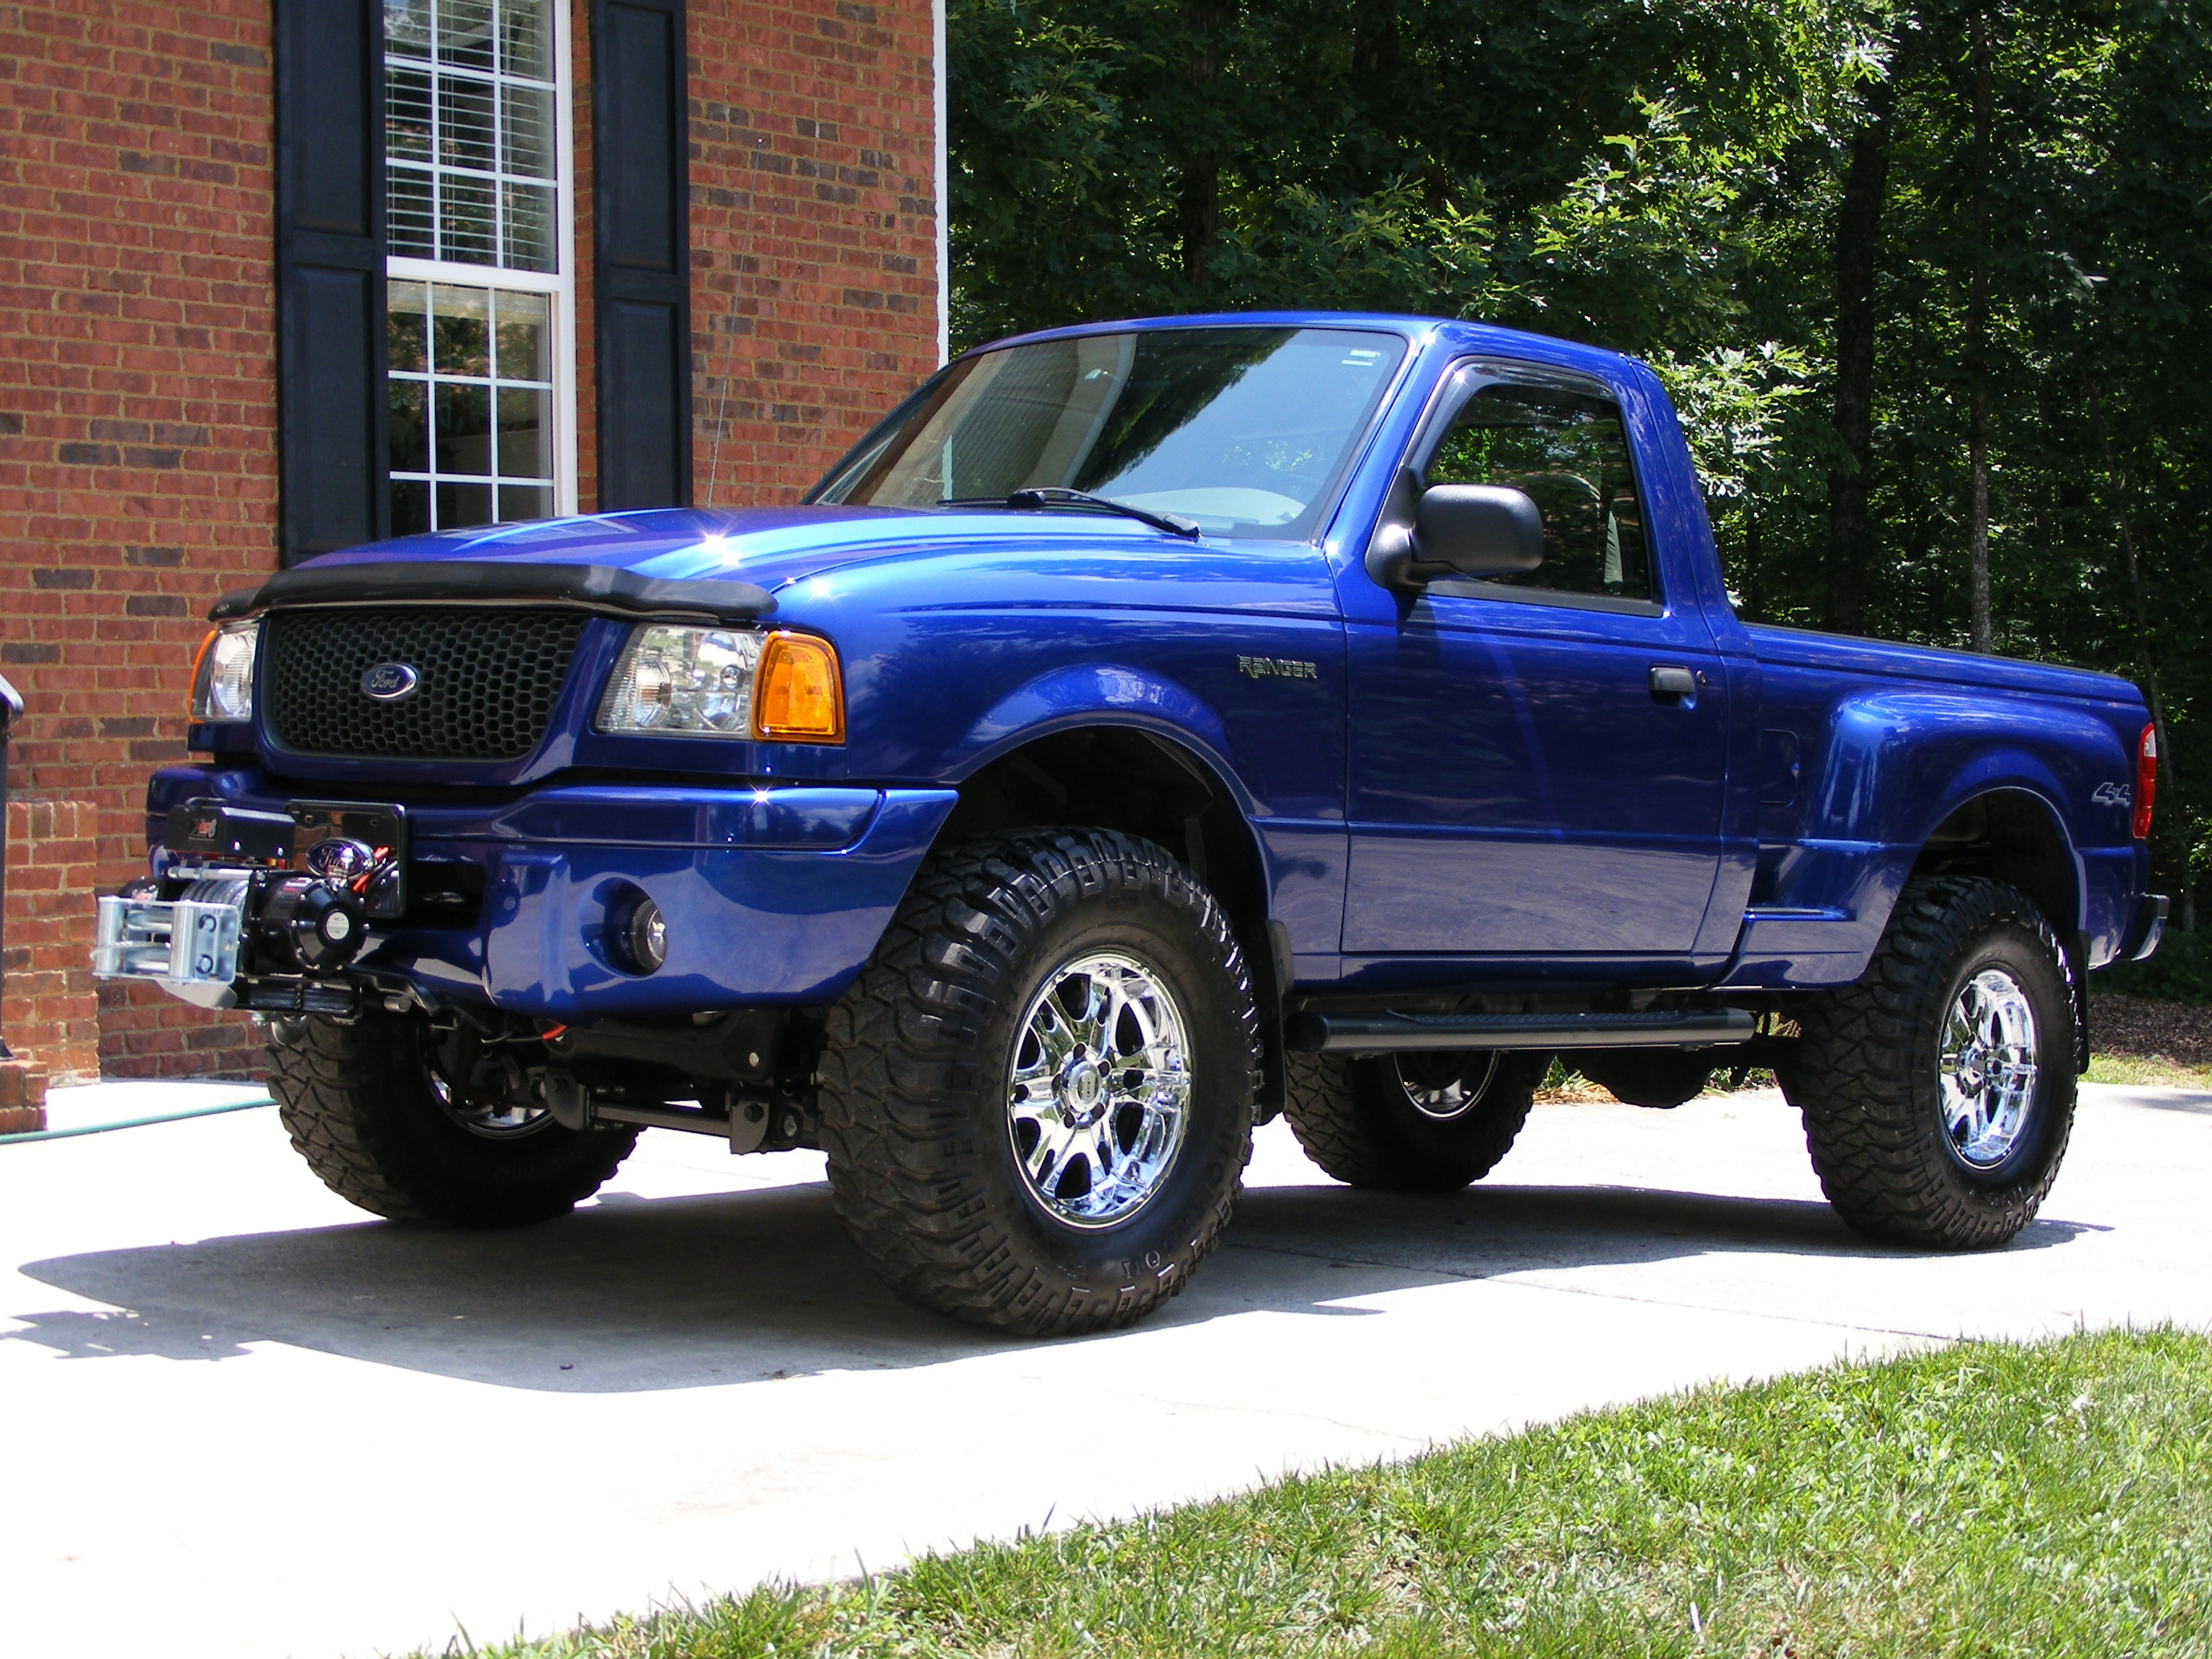 Ford Ranger Single Cab exterior restyling